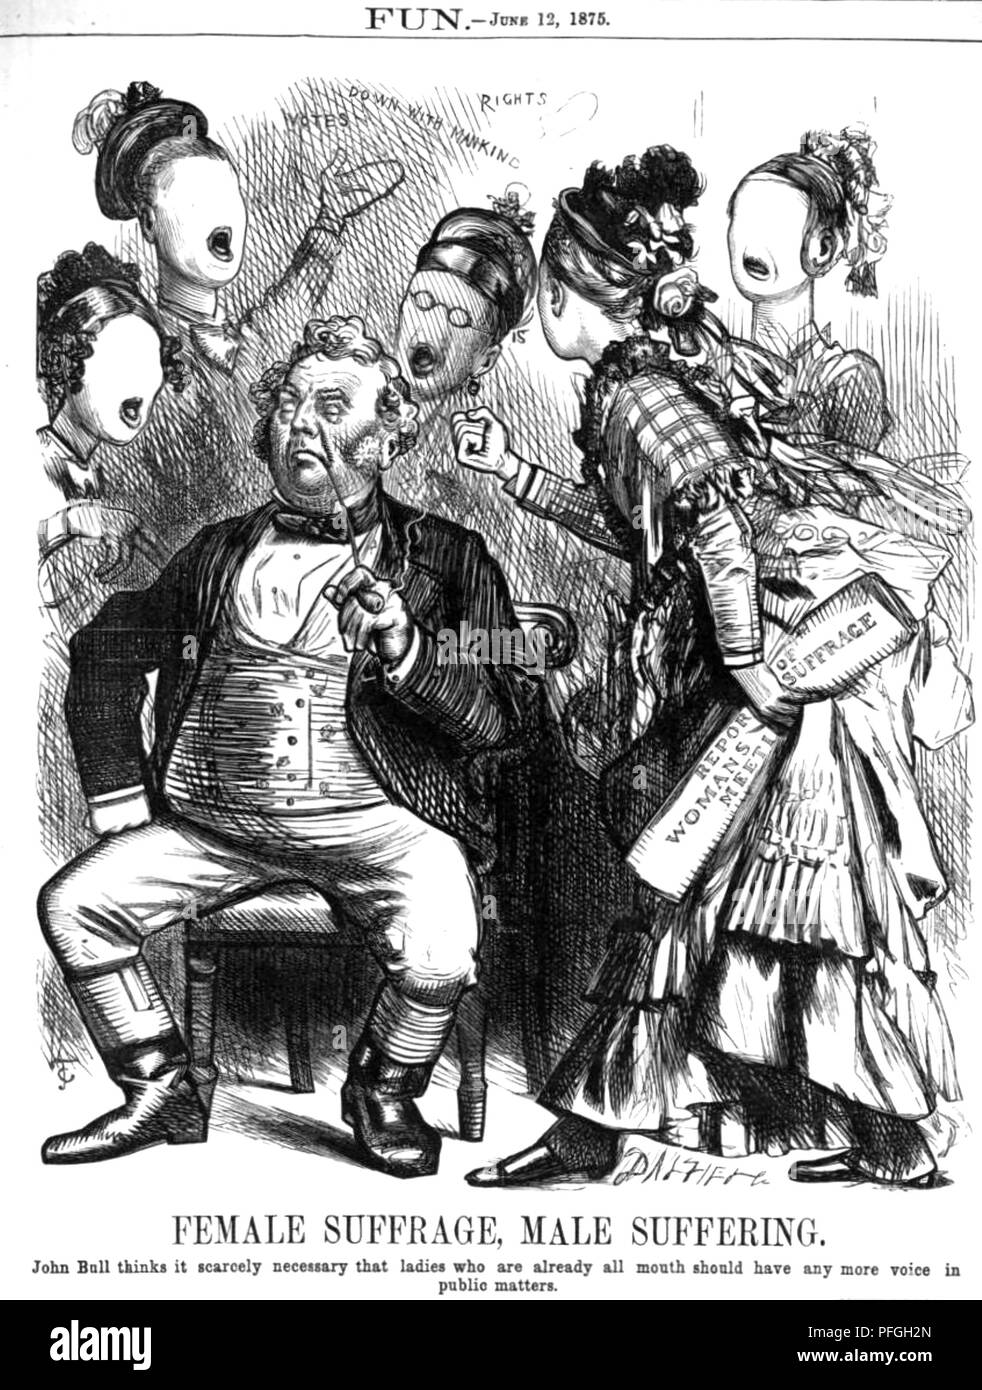 ANTI-SUFFRAGE CARTOON from the British magazine Fun, 12 June 1875 - Stock Image